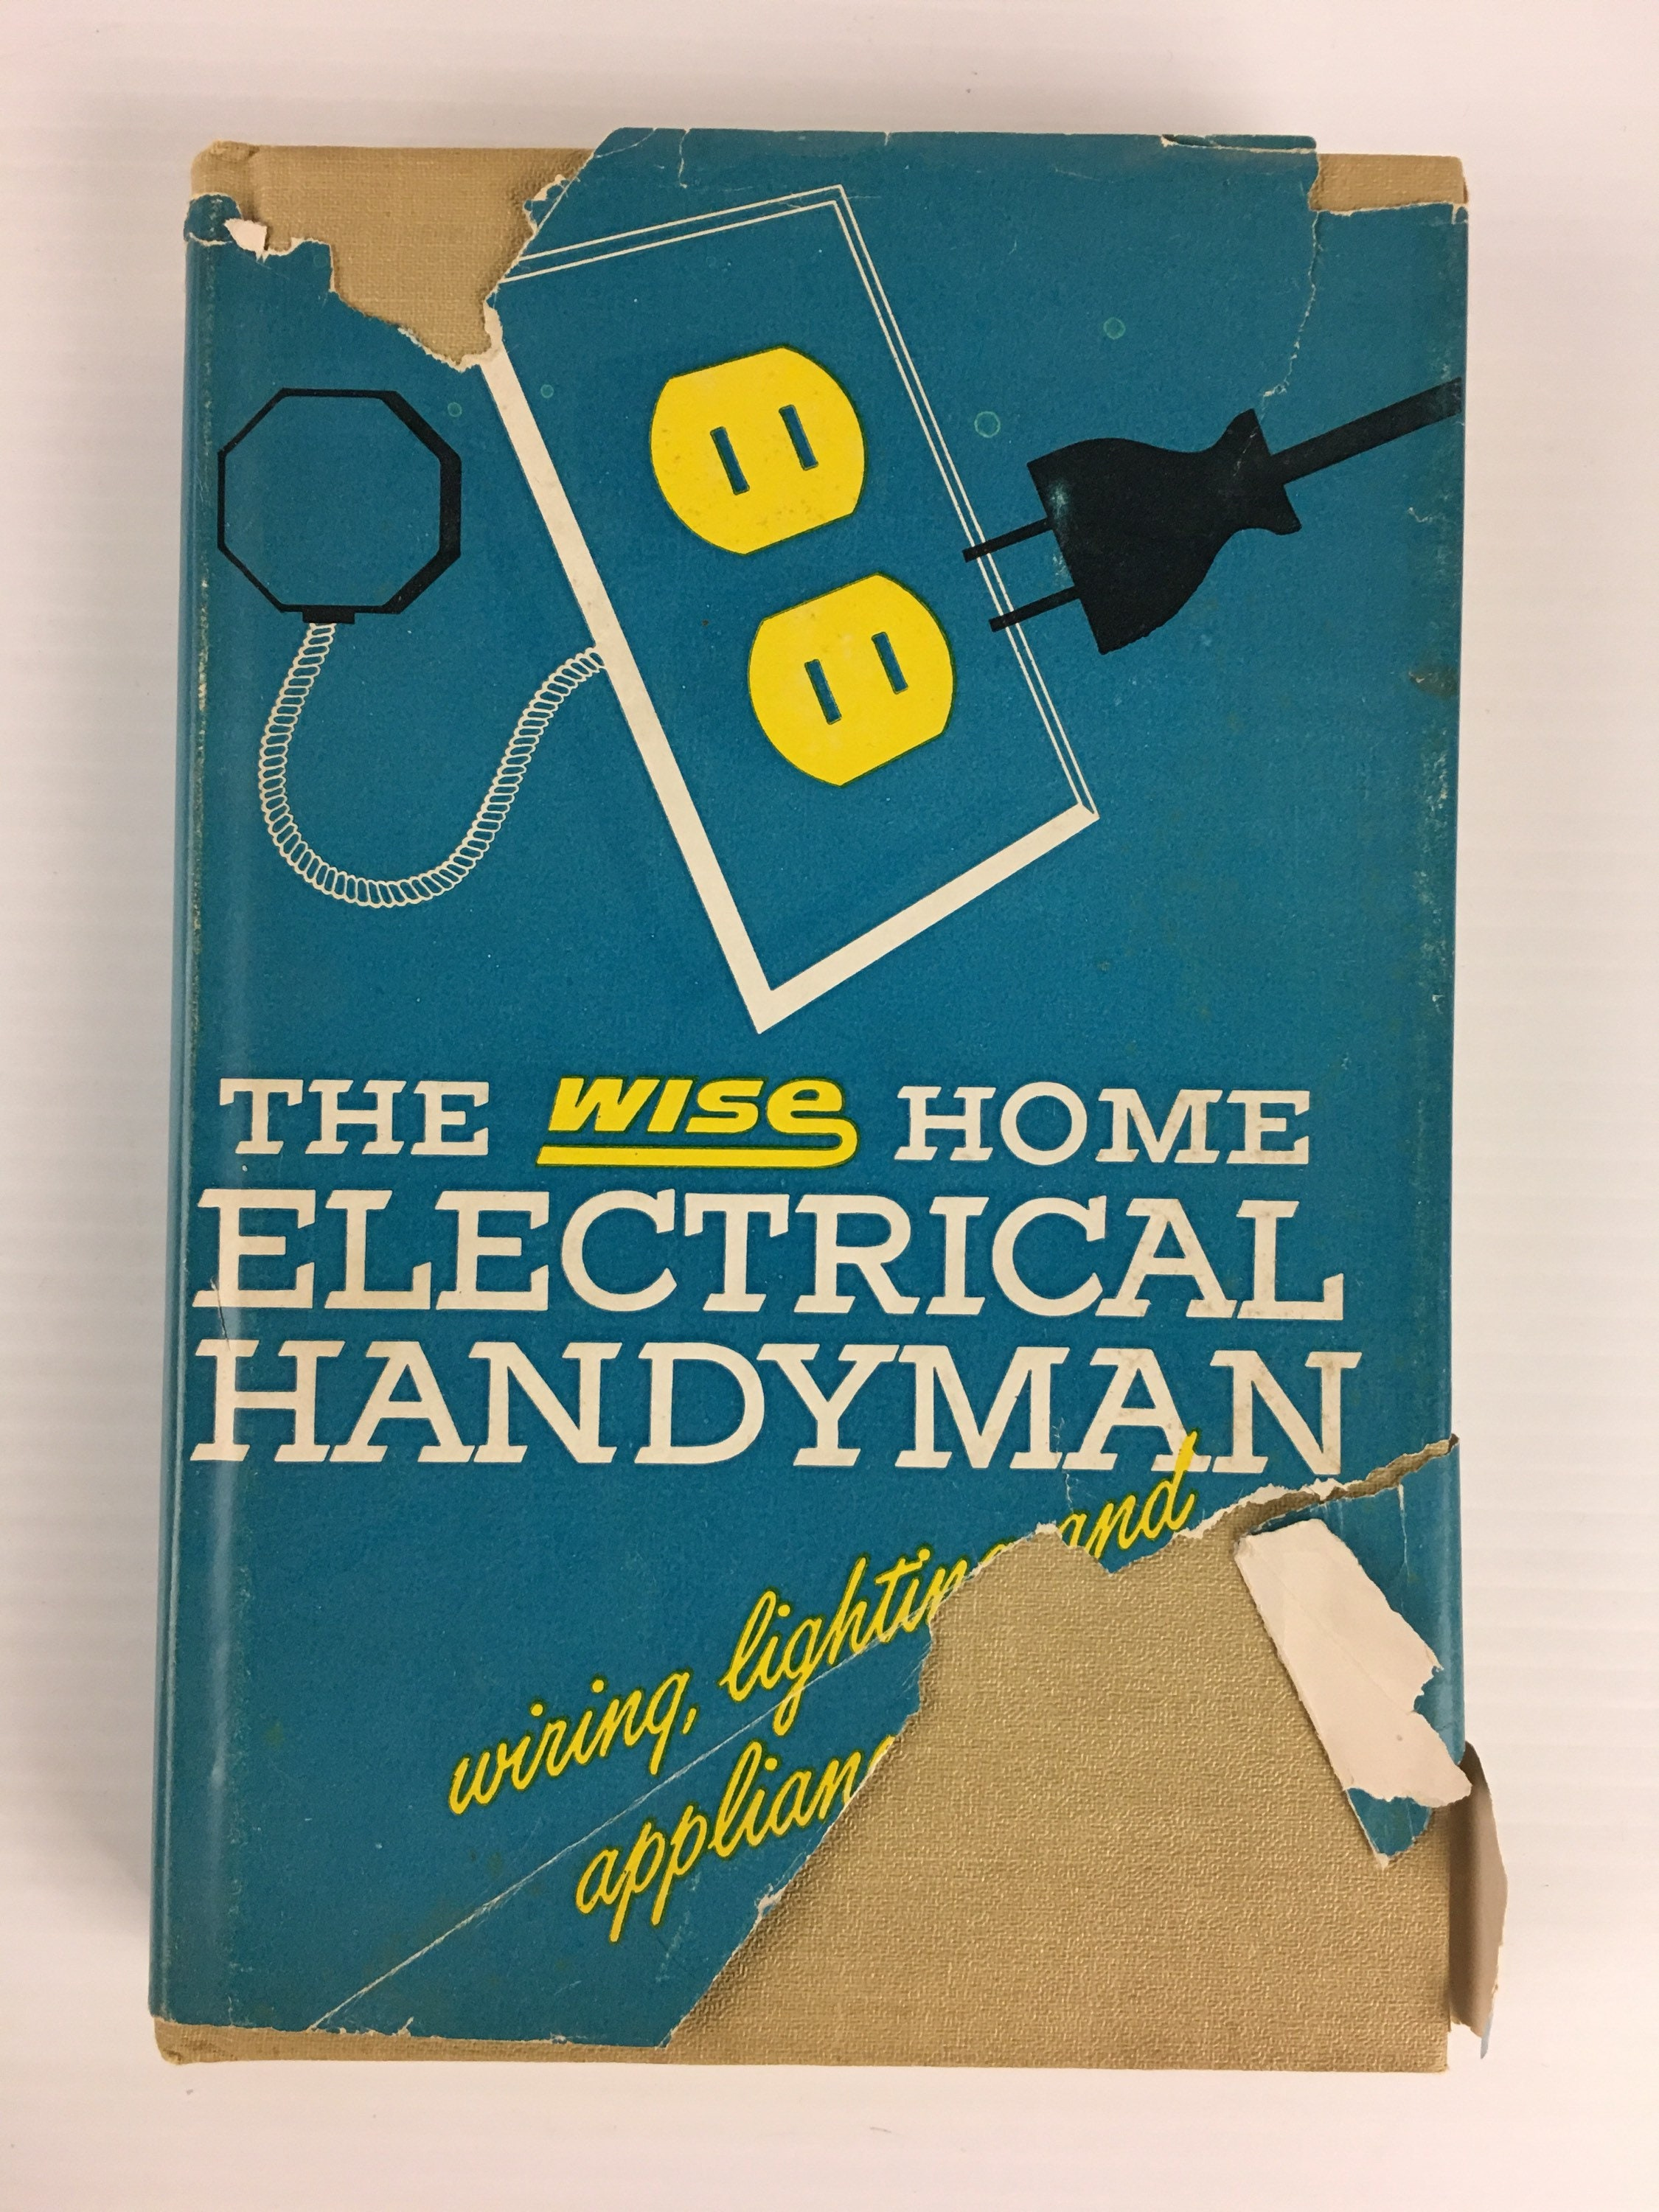 The Wise Home Electrical Handyman Hardcover Book Vintage | Etsy